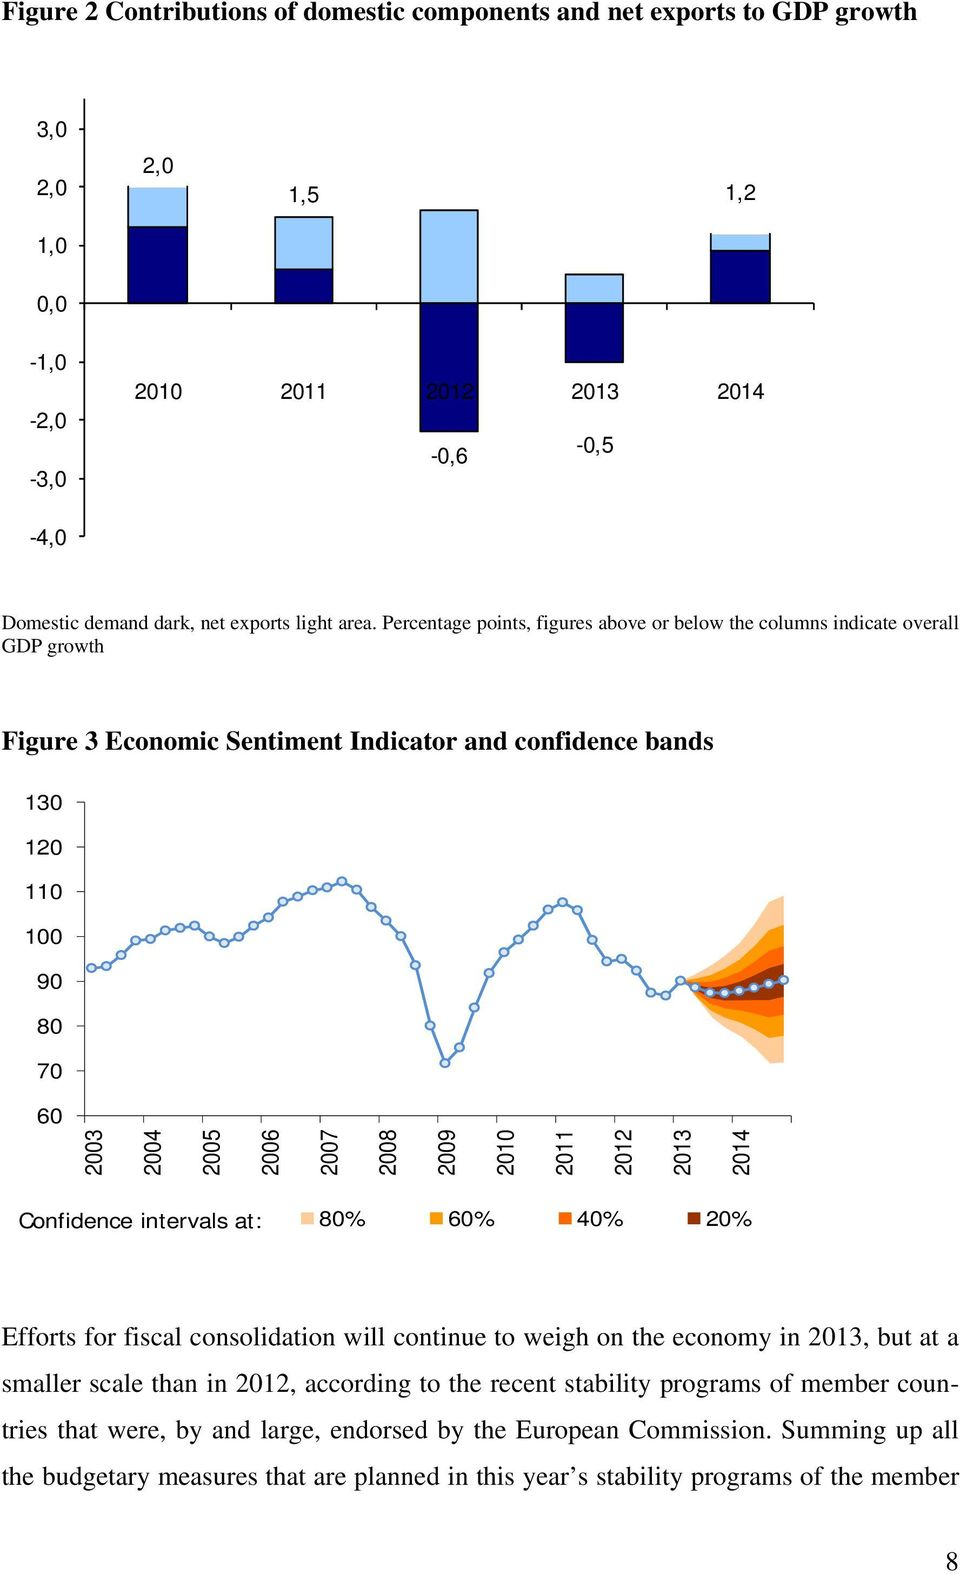 2009 2010 2011 2012 2013 2014 Confidence intervals at: 80% 60% 40% 20% Efforts for fiscal consolidation will continue to weigh on the economy in 2013, but at a smaller scale than in 2012, according